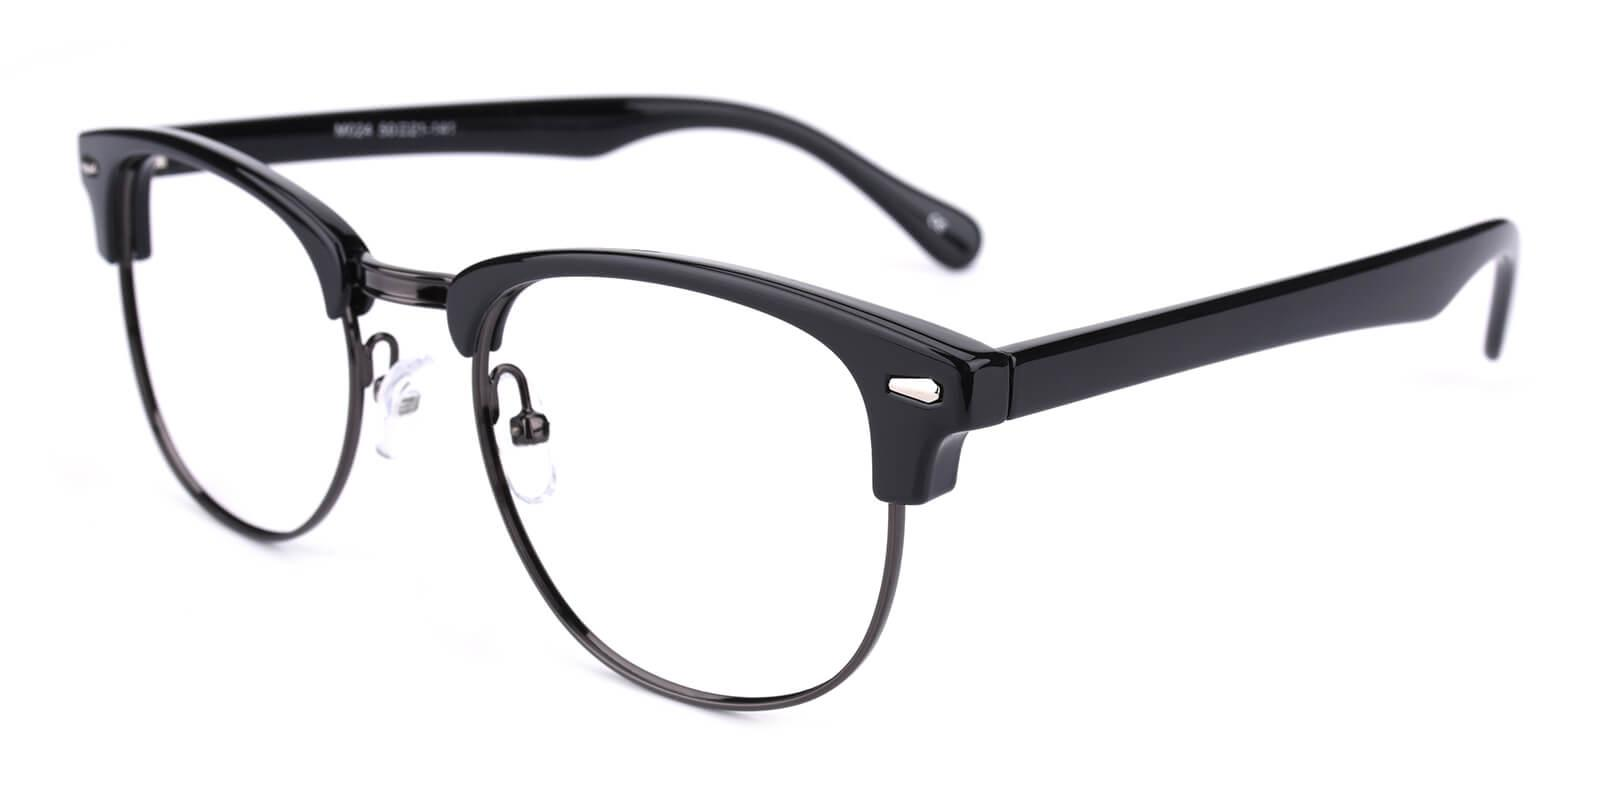 Ferrous-Black-Browline-Combination / Metal / Plastic-Eyeglasses-additional1